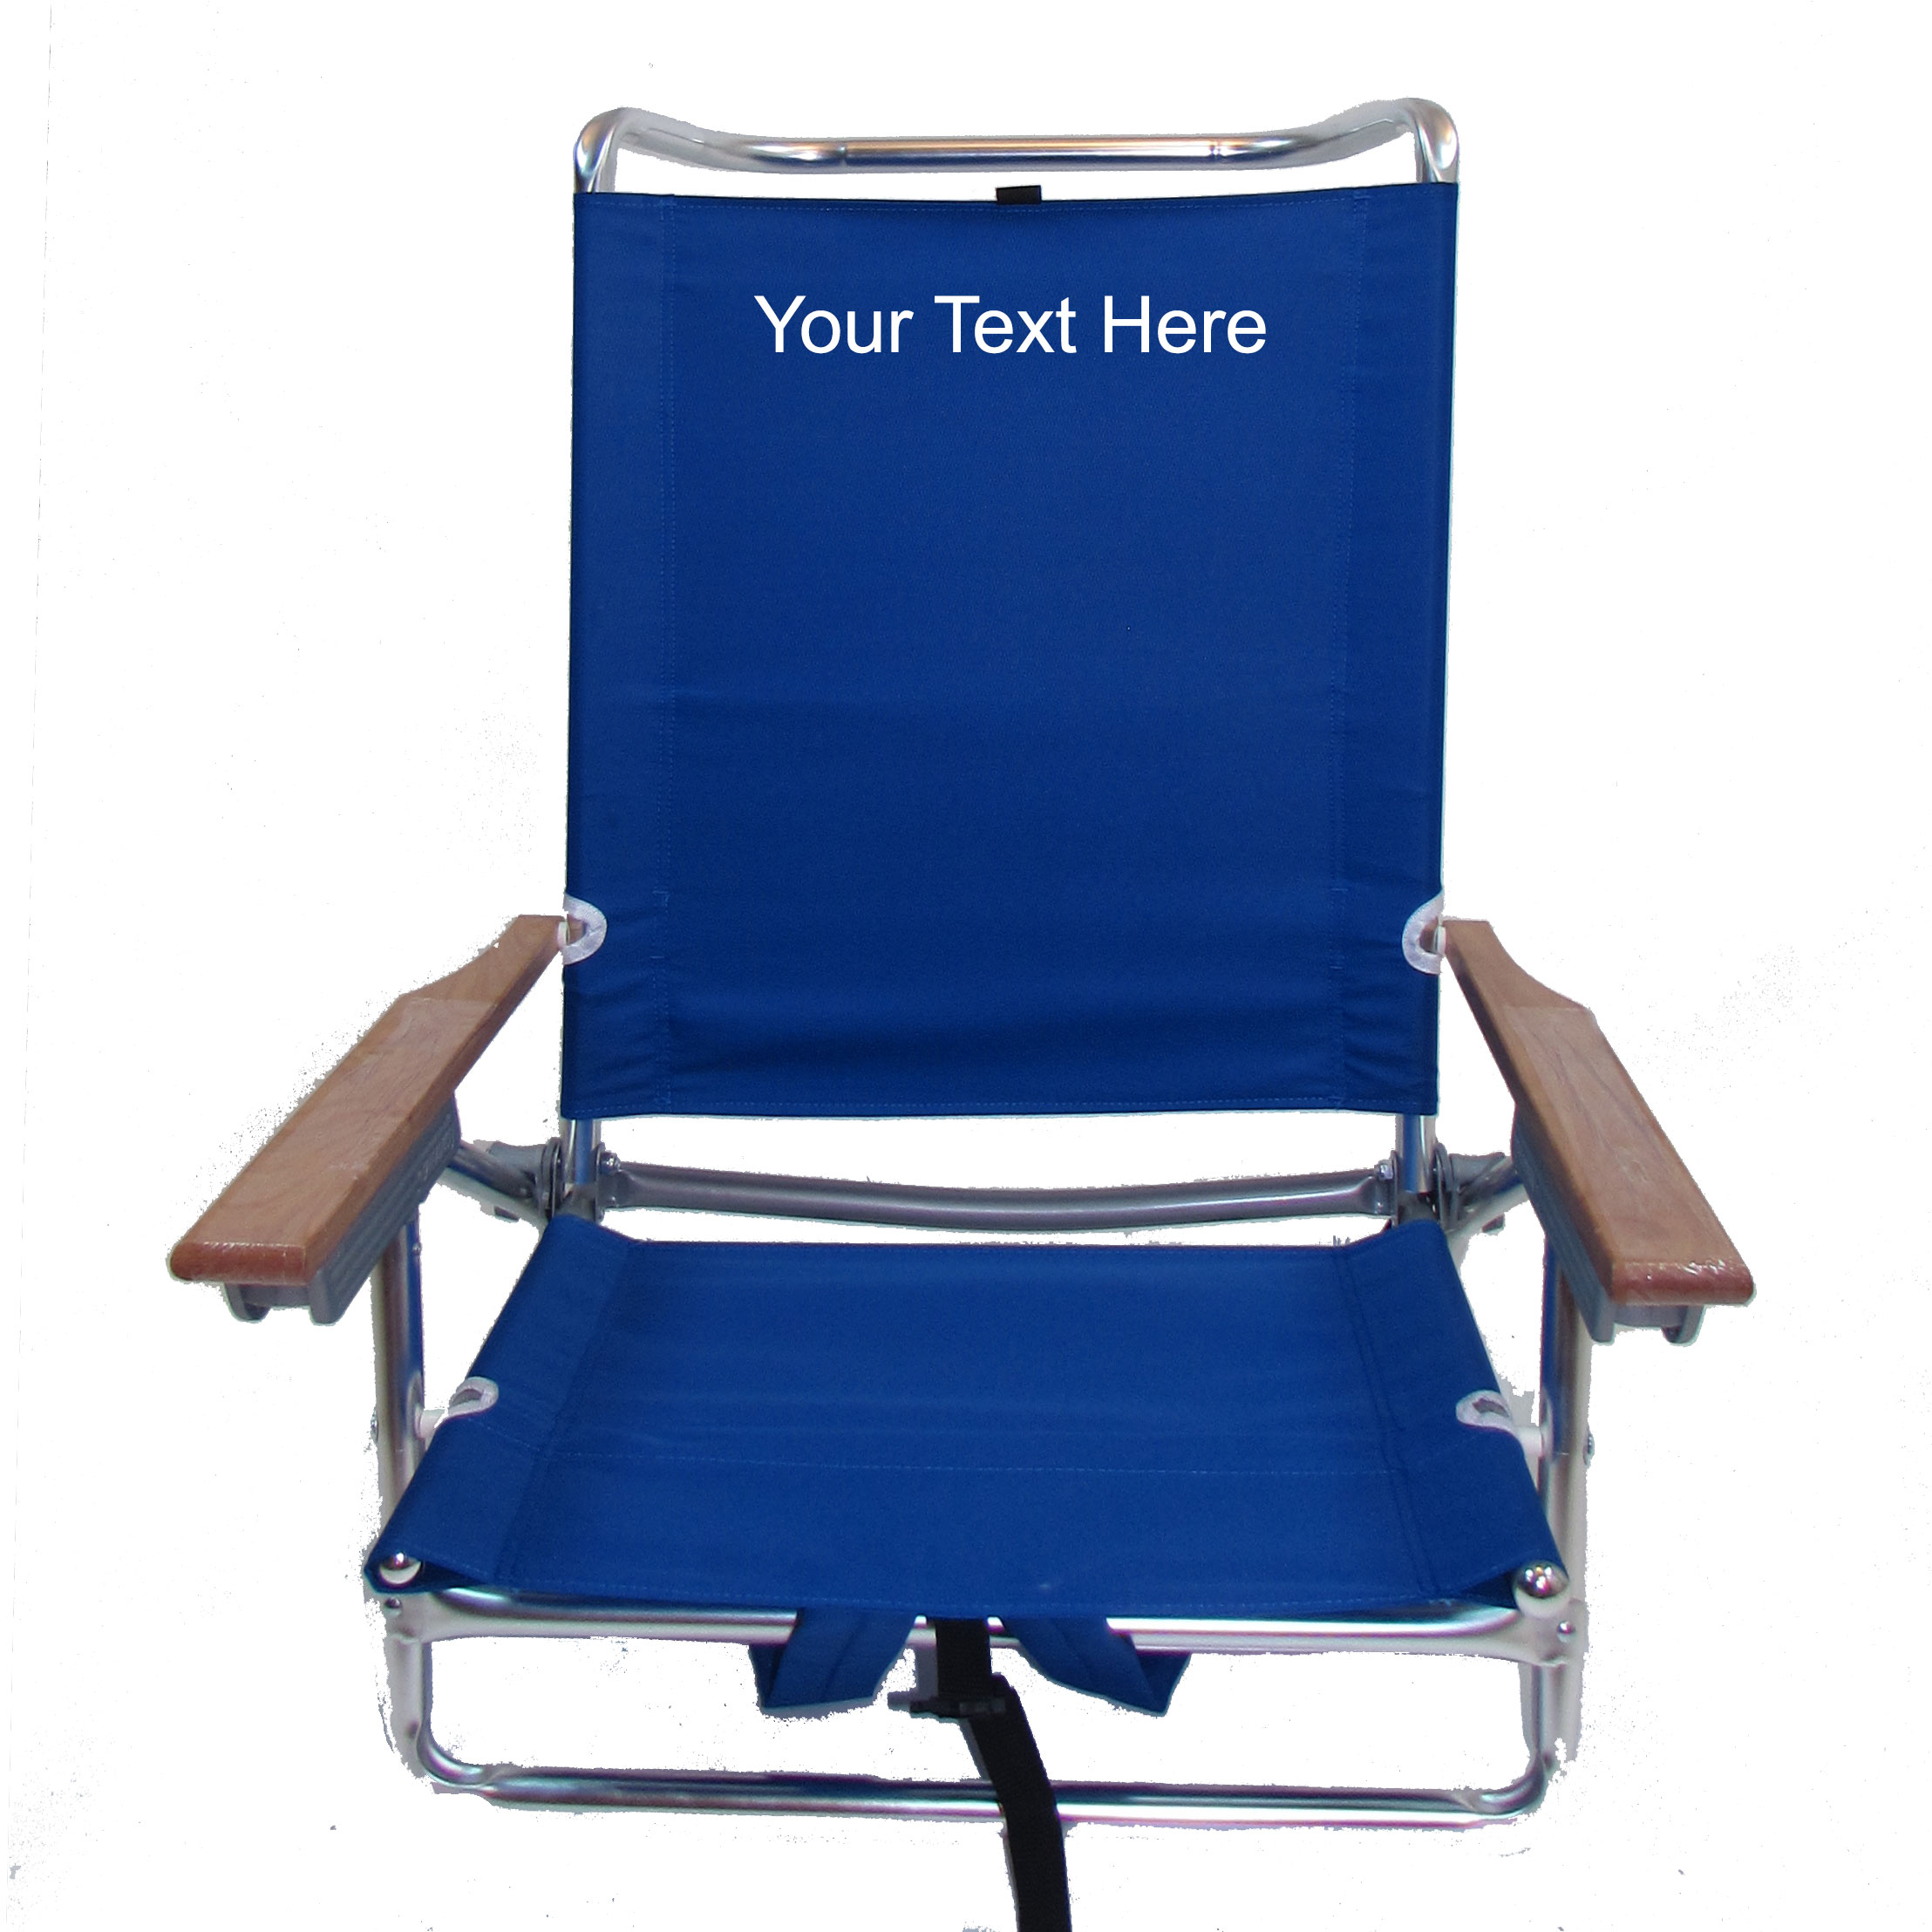 IMPRINTED Personalized Classic 5 Position Backpack Beach Chair by Rio Beach